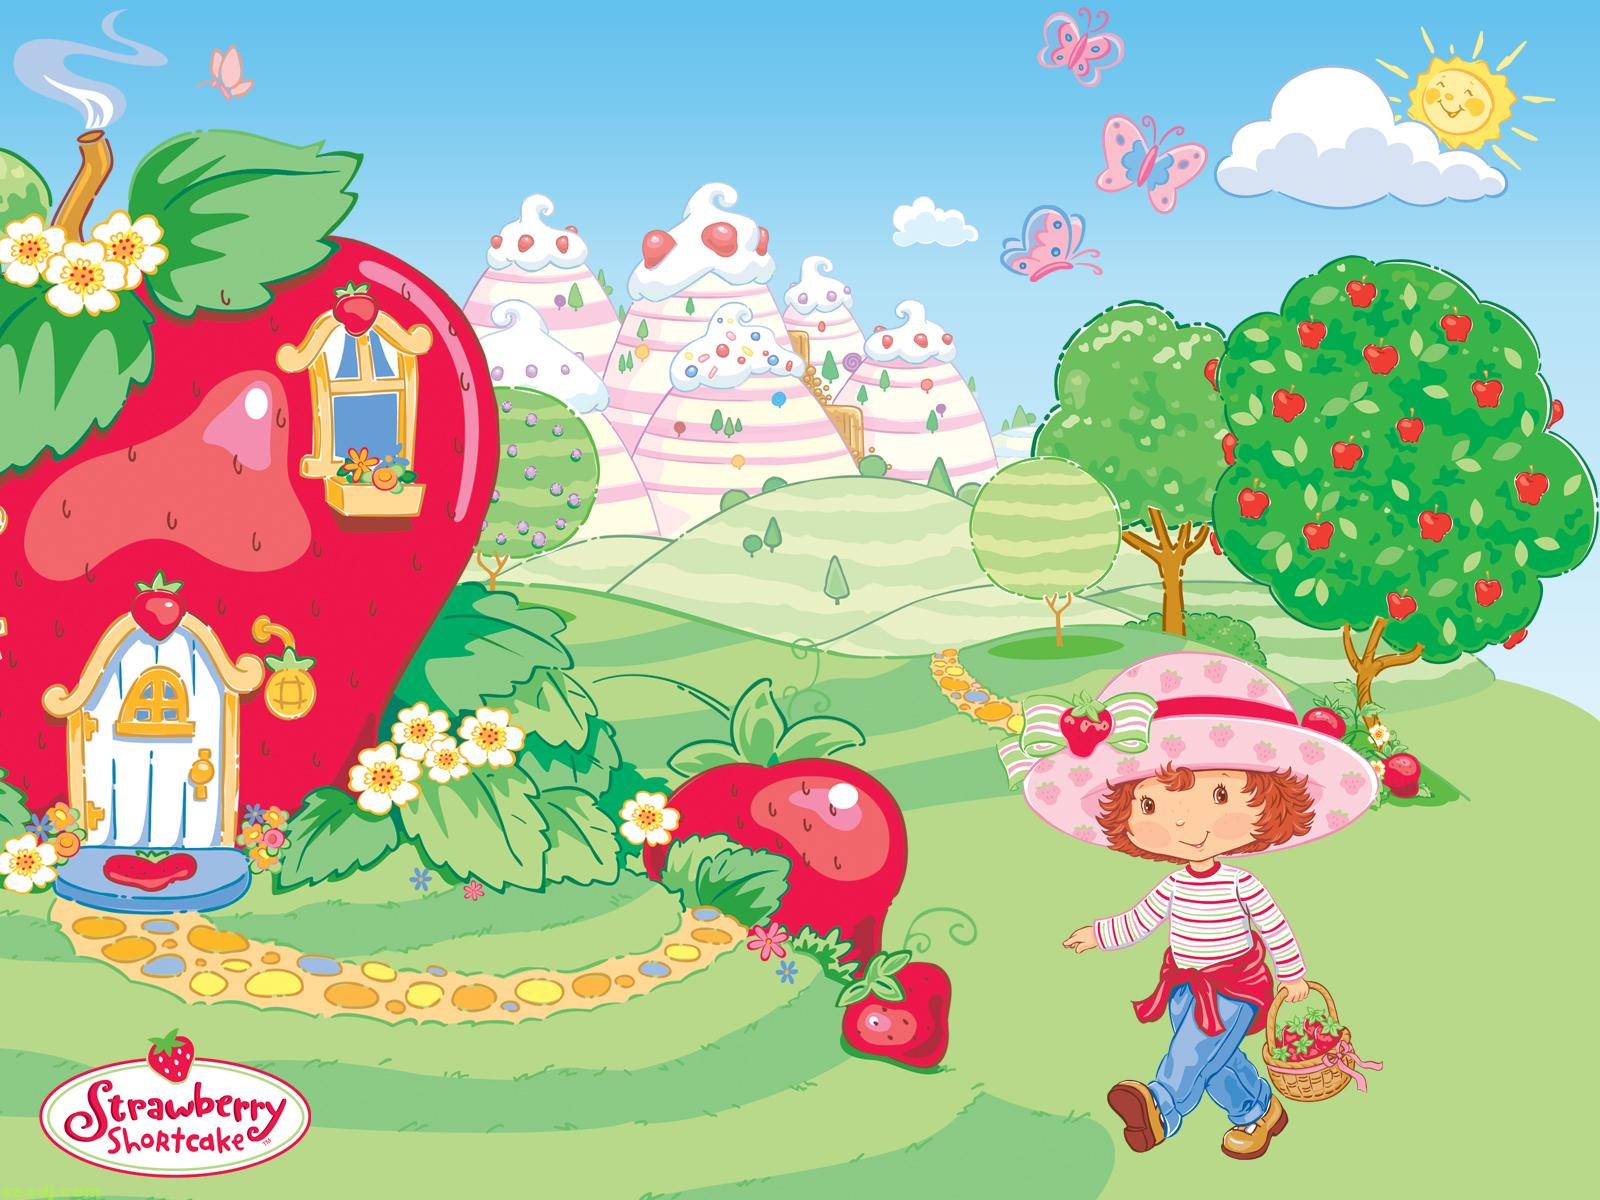 Strawberry Shortcake Girl Wallpaper 8 Hd Strawberry Shortcake Wallpapers